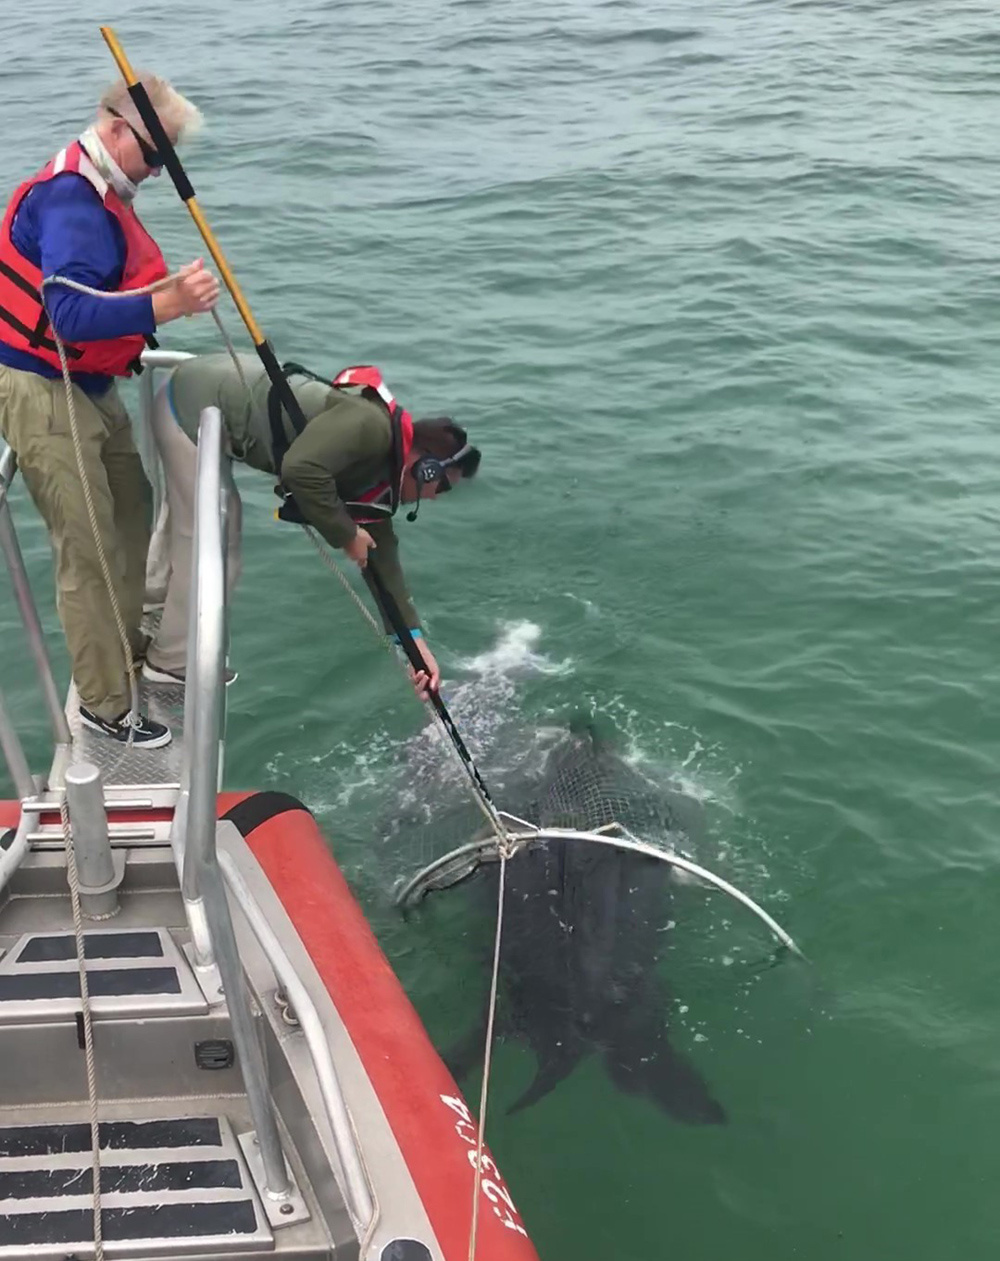 leatherback turtle captured in large net from boat